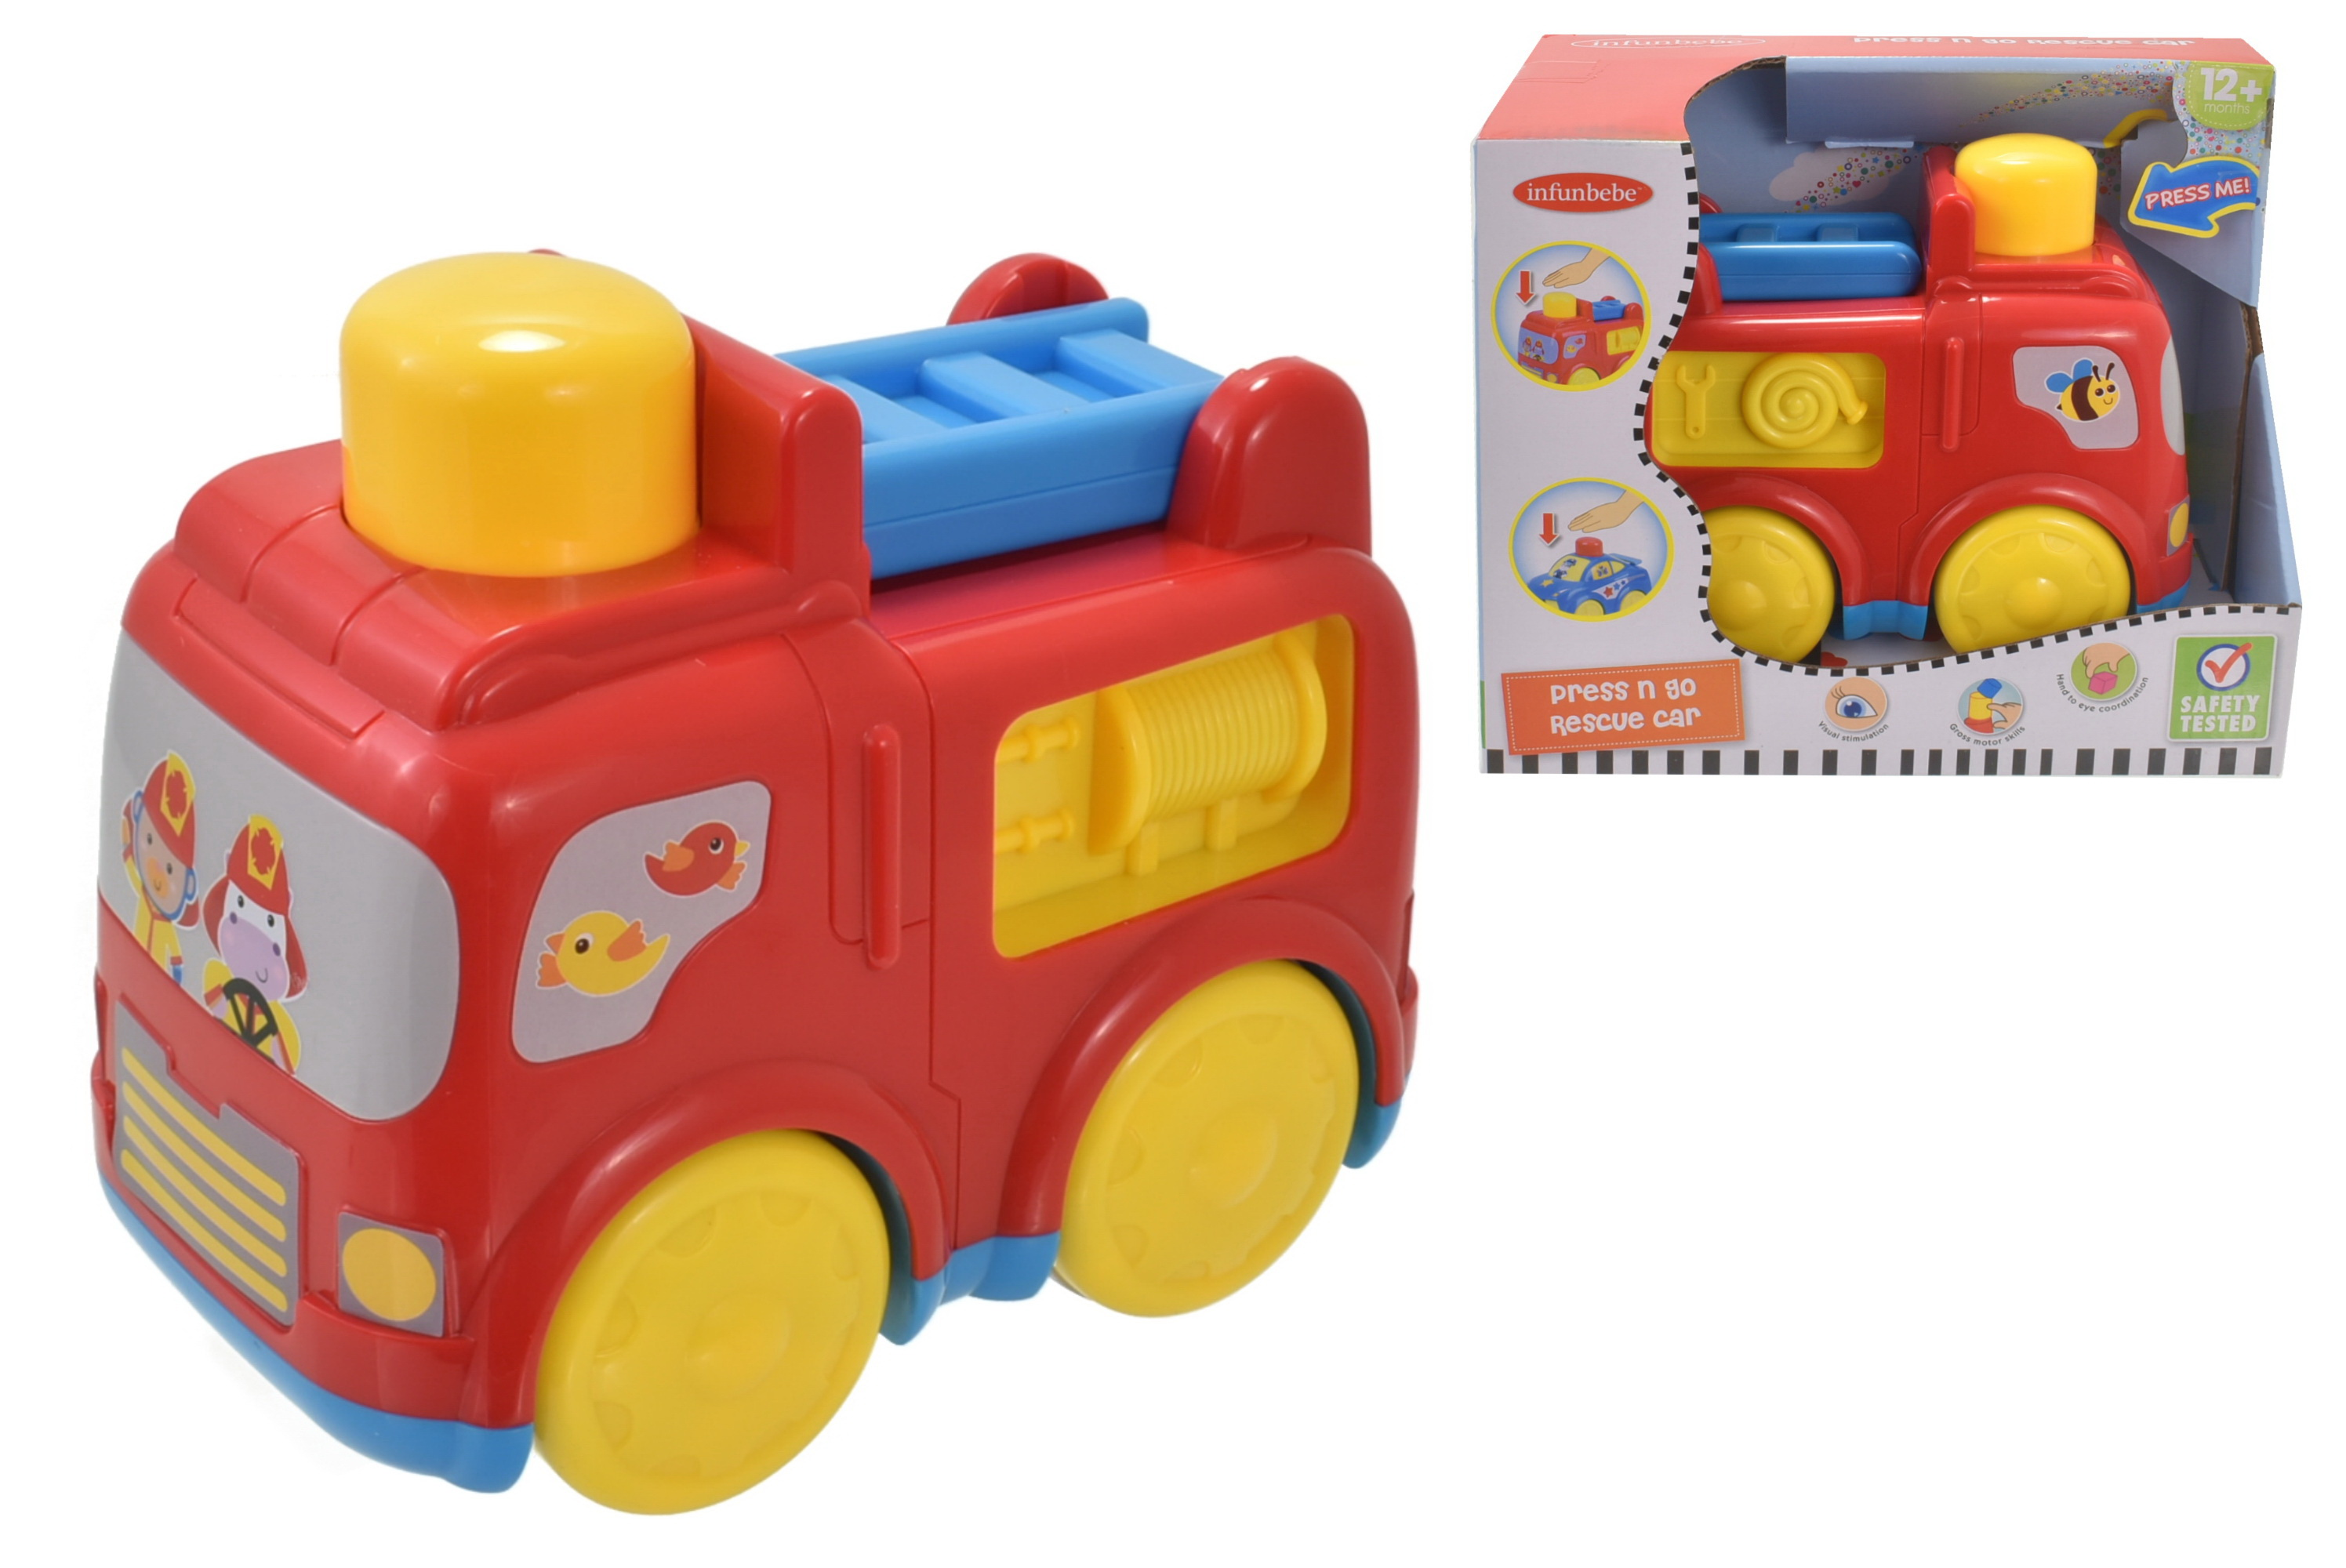 Press N Go Fire Engine In Open Touch Box - 12m+